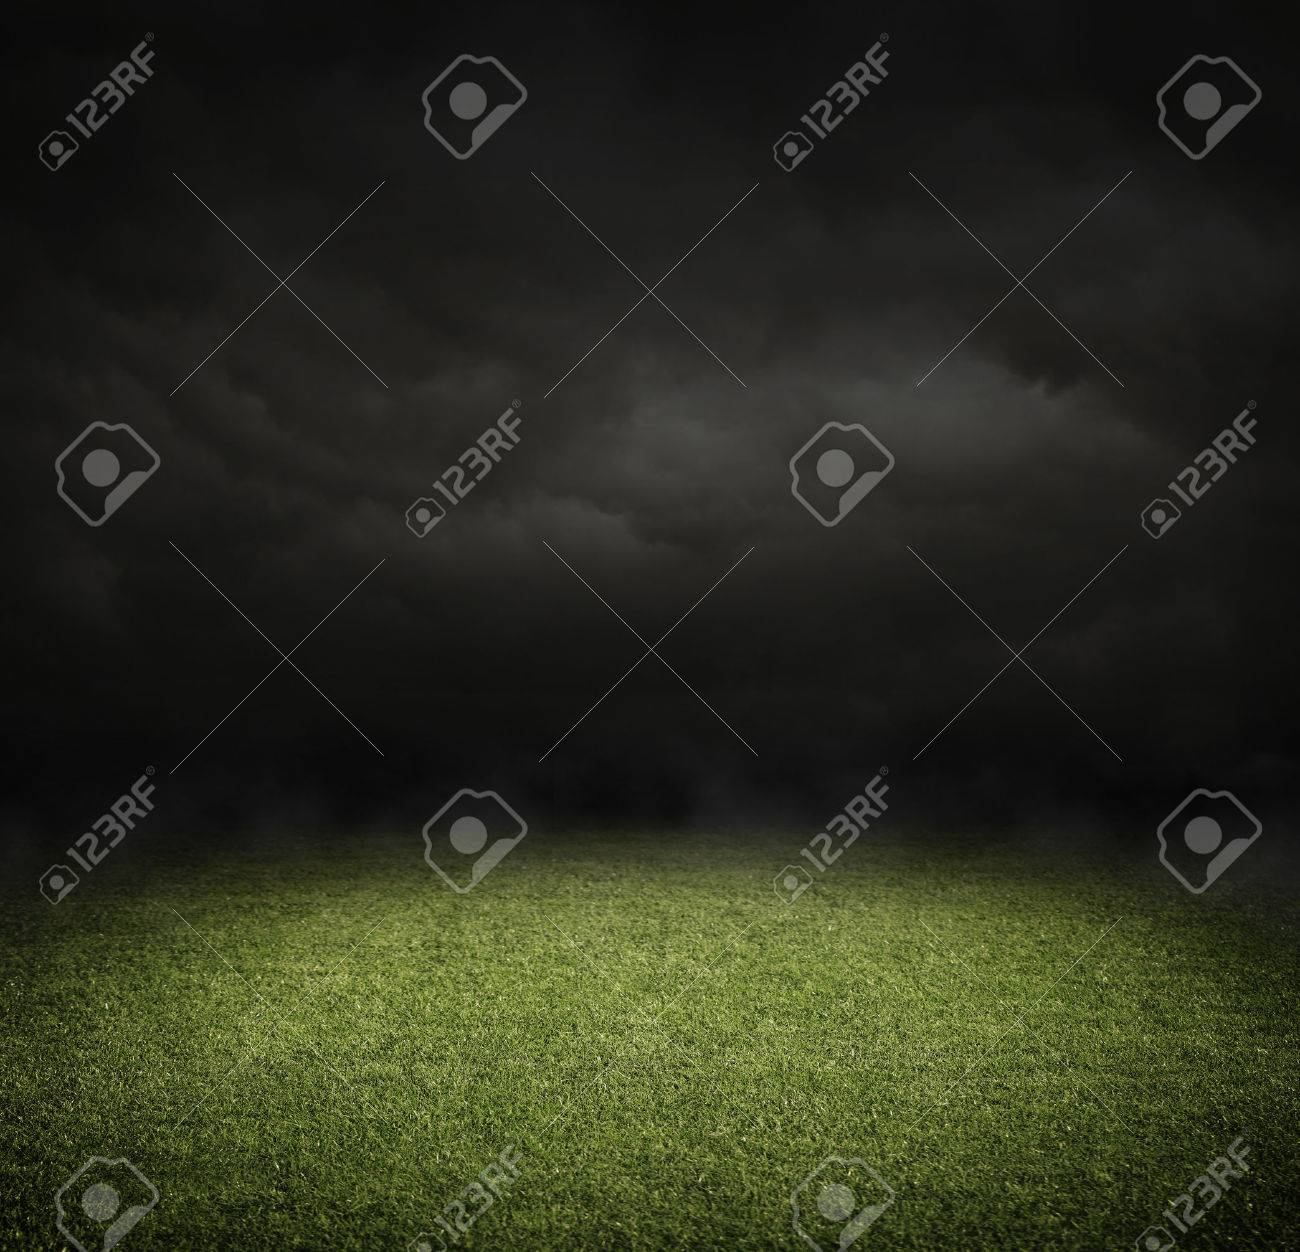 Soccer or football field at night with copy space - 46074228